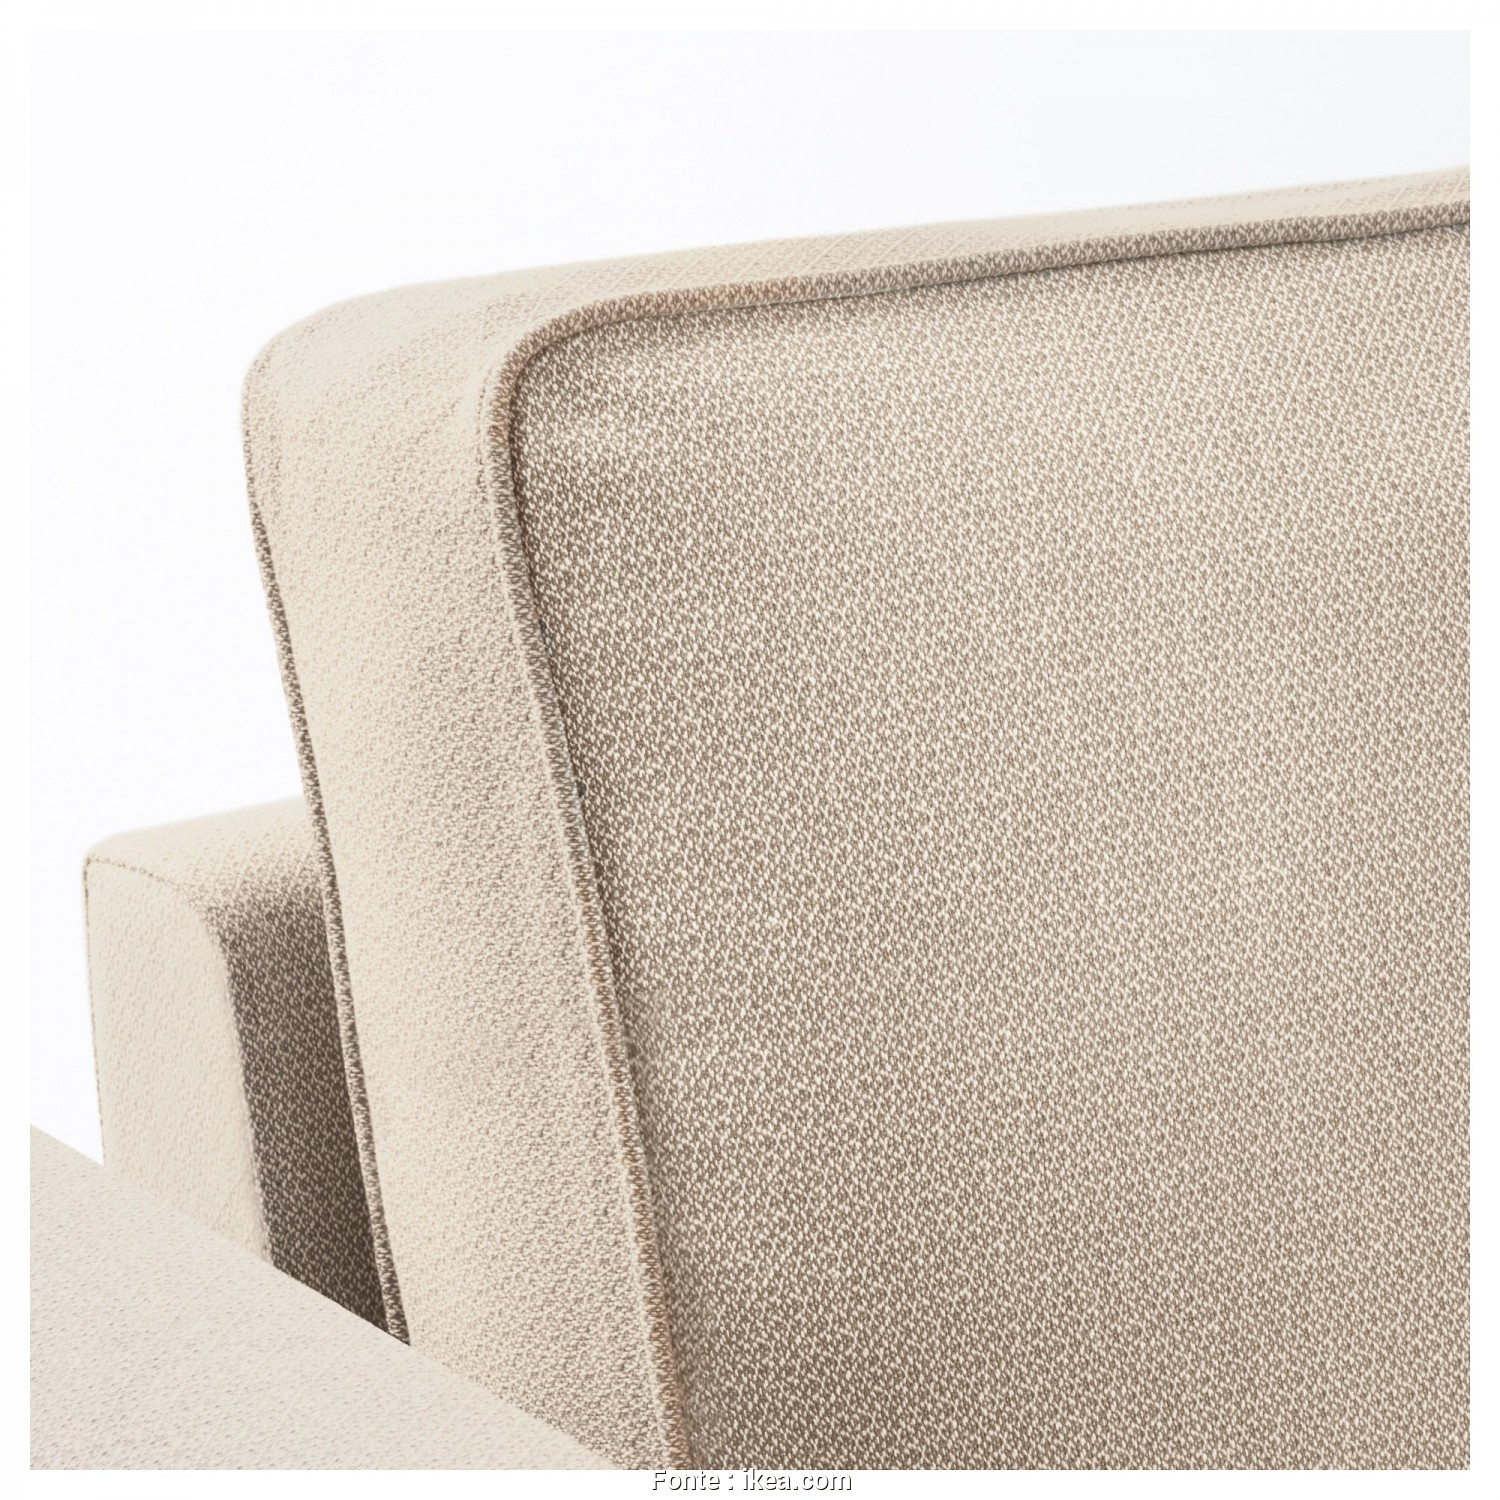 Backabro Ikea Cover, Bello BACKABRO Cover Sofa-Bed With Chaise Longue Hylte Beige